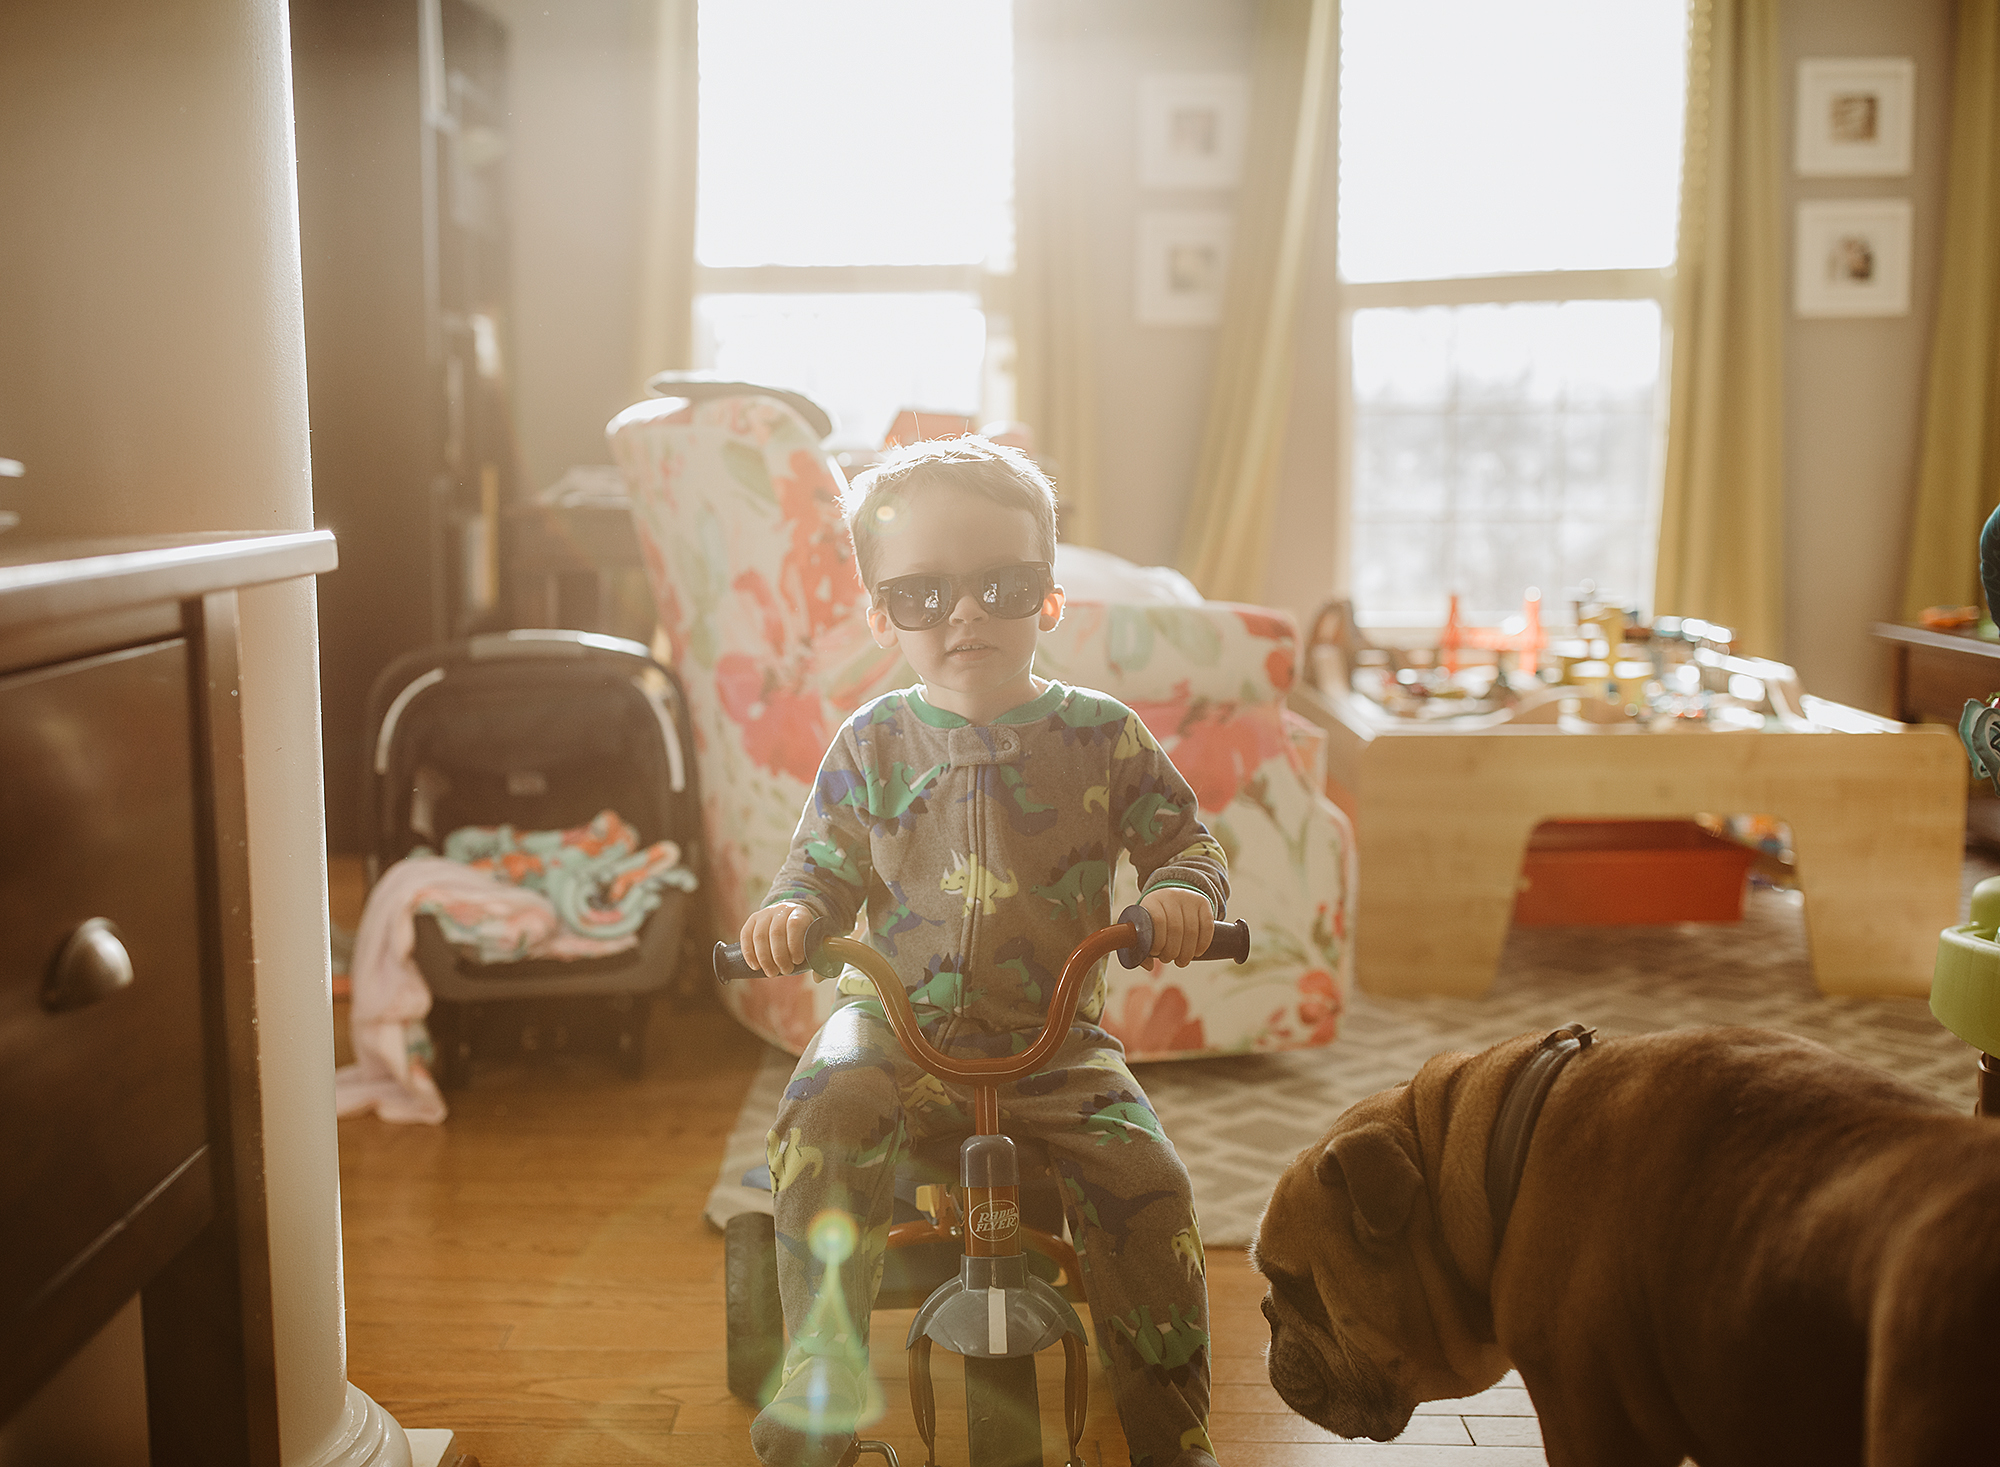 Messes everywhere, but I will always cherish this...my crazy little guy racing his trike through our house.